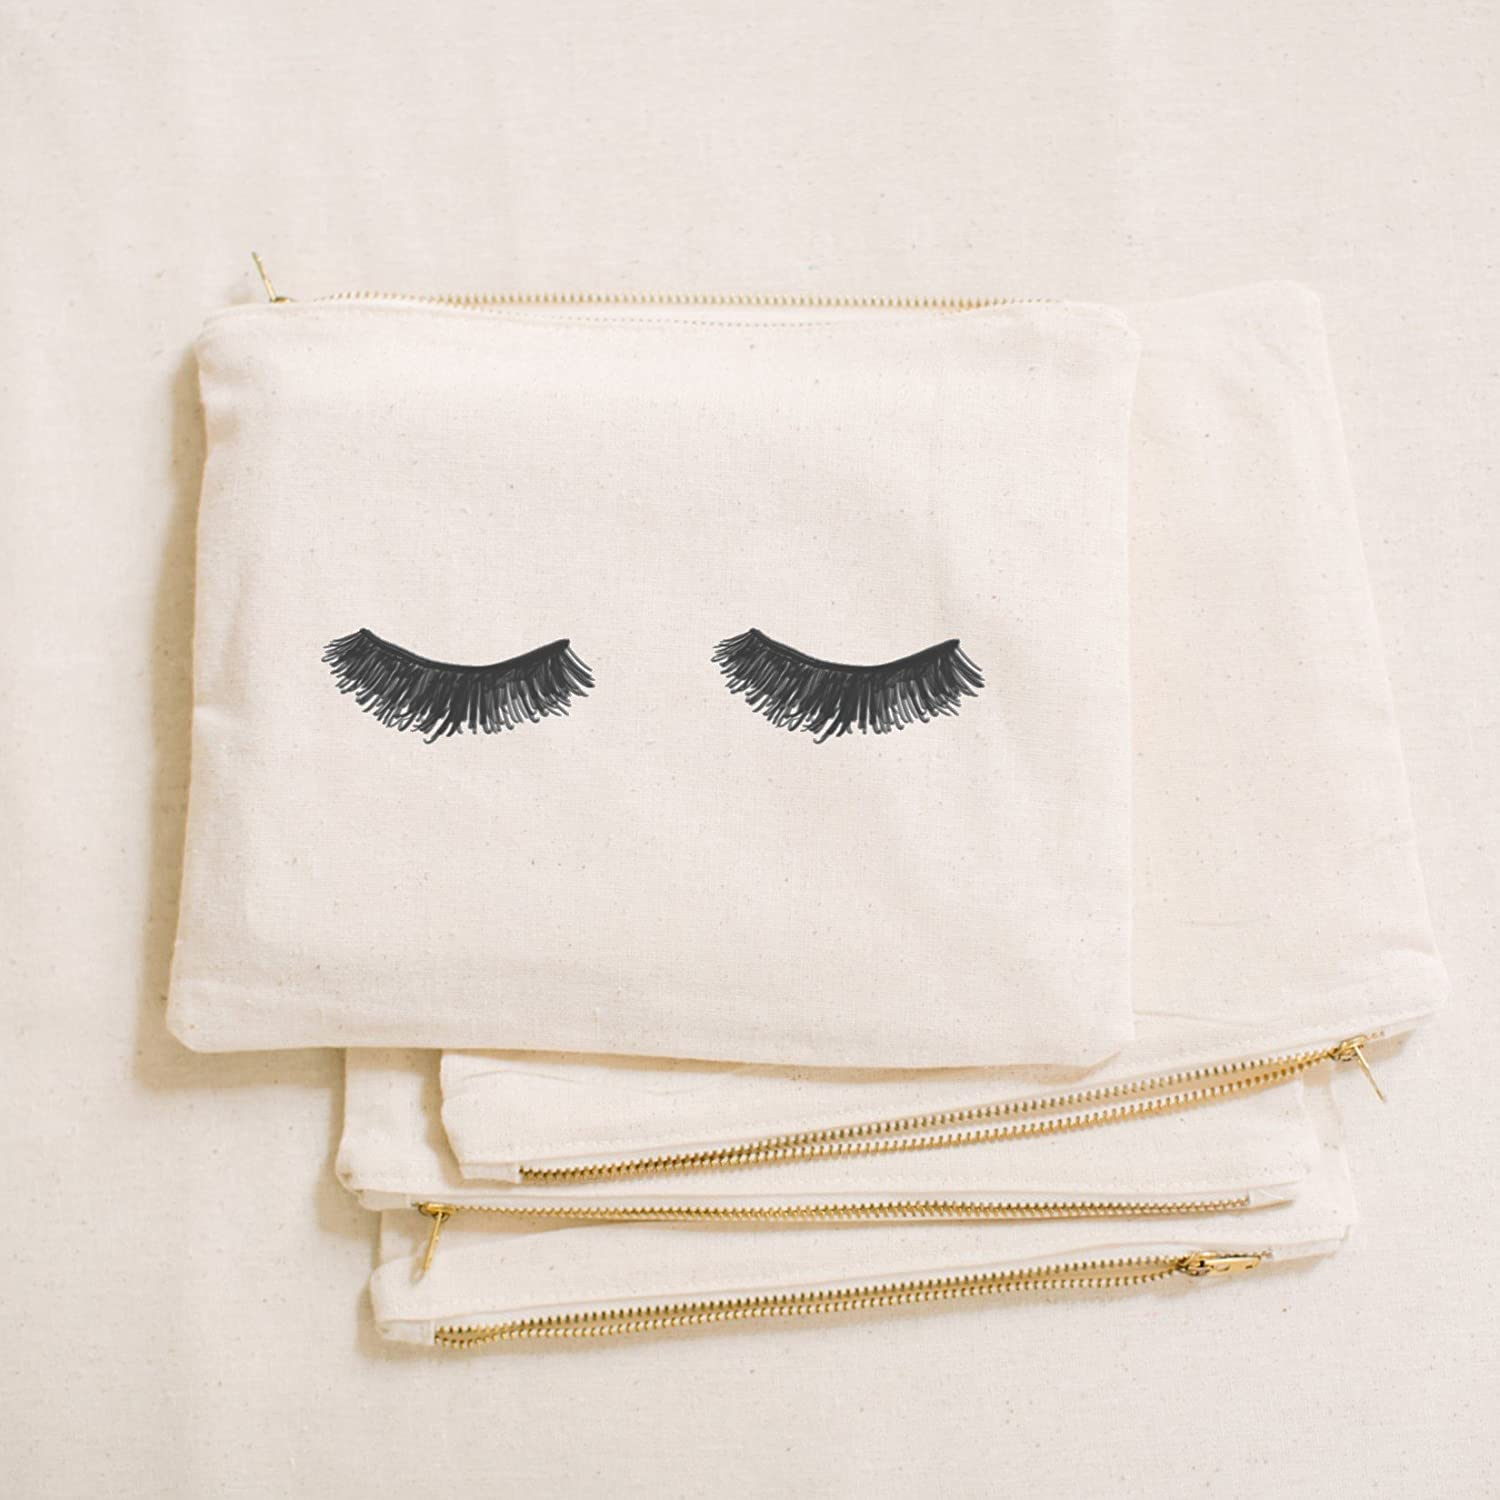 Cosmetic Bag - Eyelashes, Handmade in the USA, make up, pencil case, clutch, wedding favor, present, bridesmaid gift, women's gift